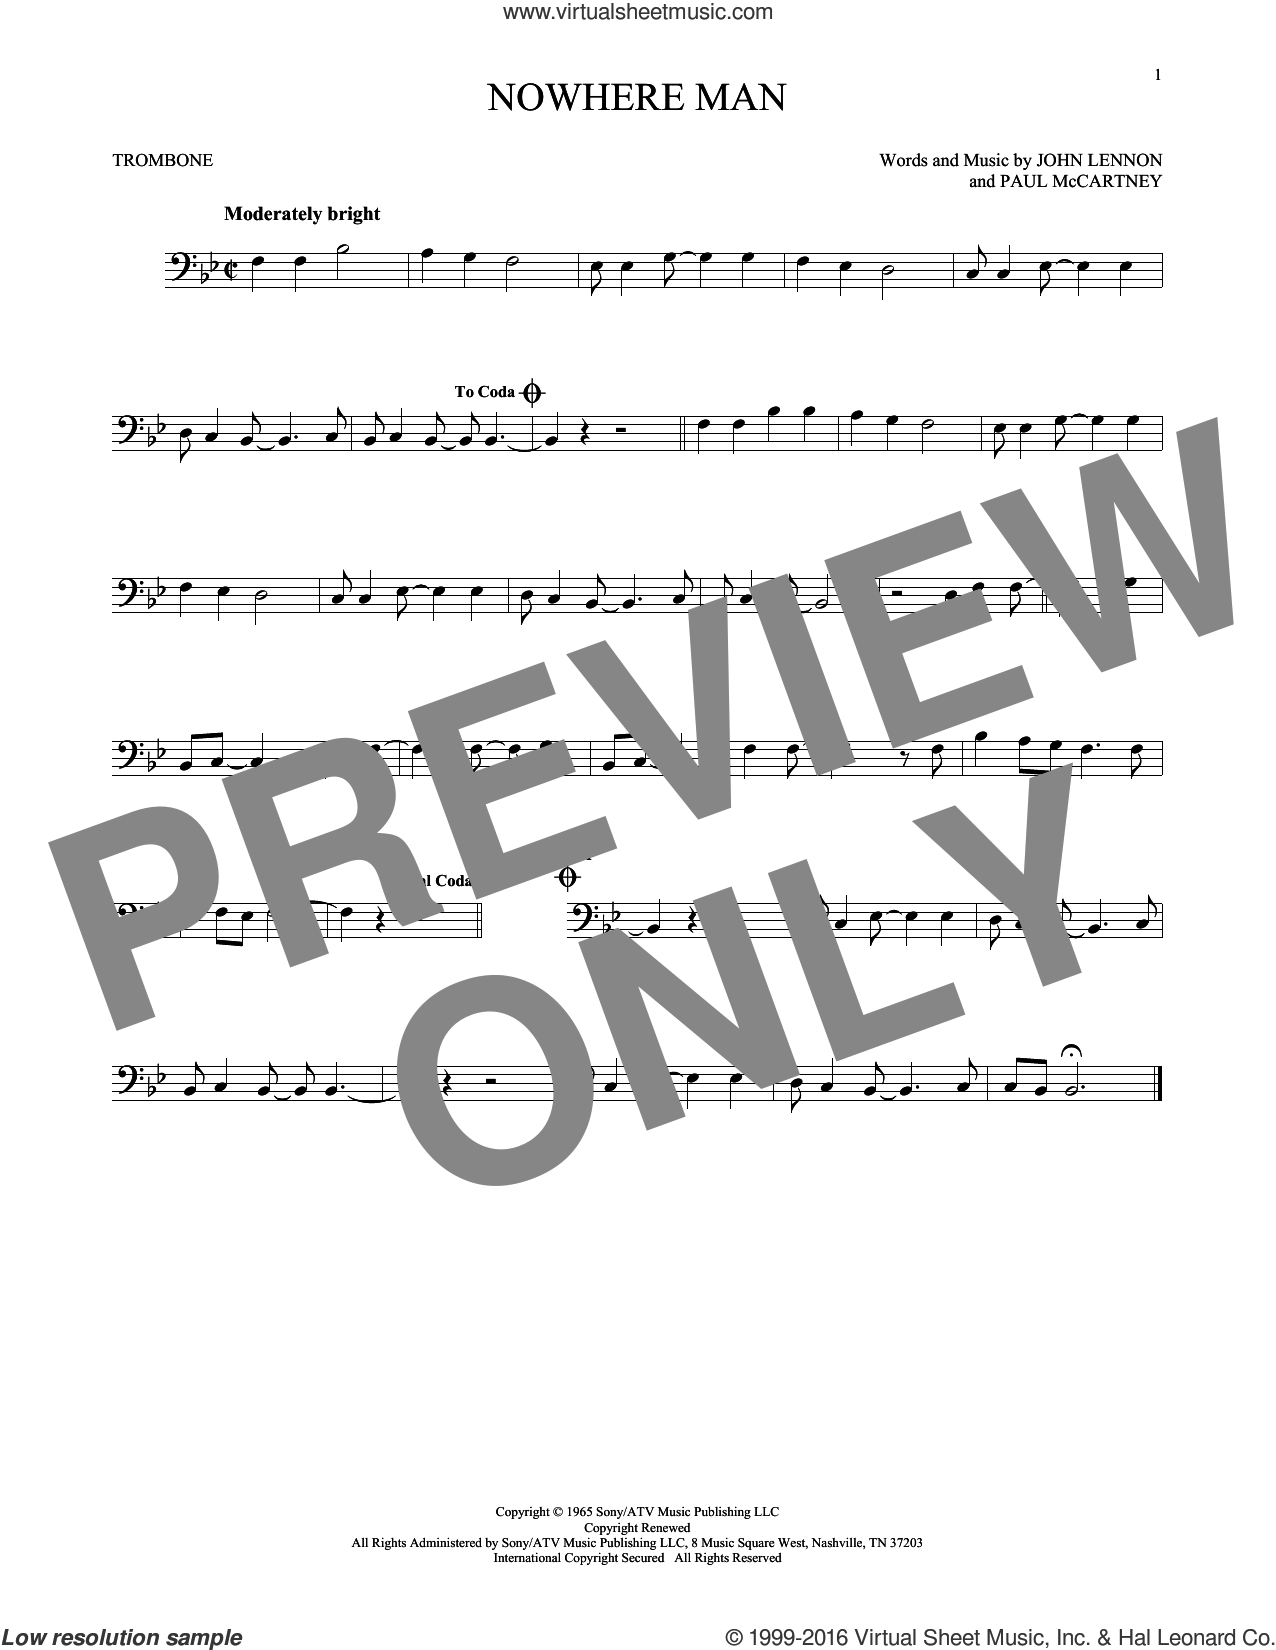 Nowhere Man sheet music for trombone solo by The Beatles, John Lennon and Paul McCartney, intermediate trombone. Score Image Preview.